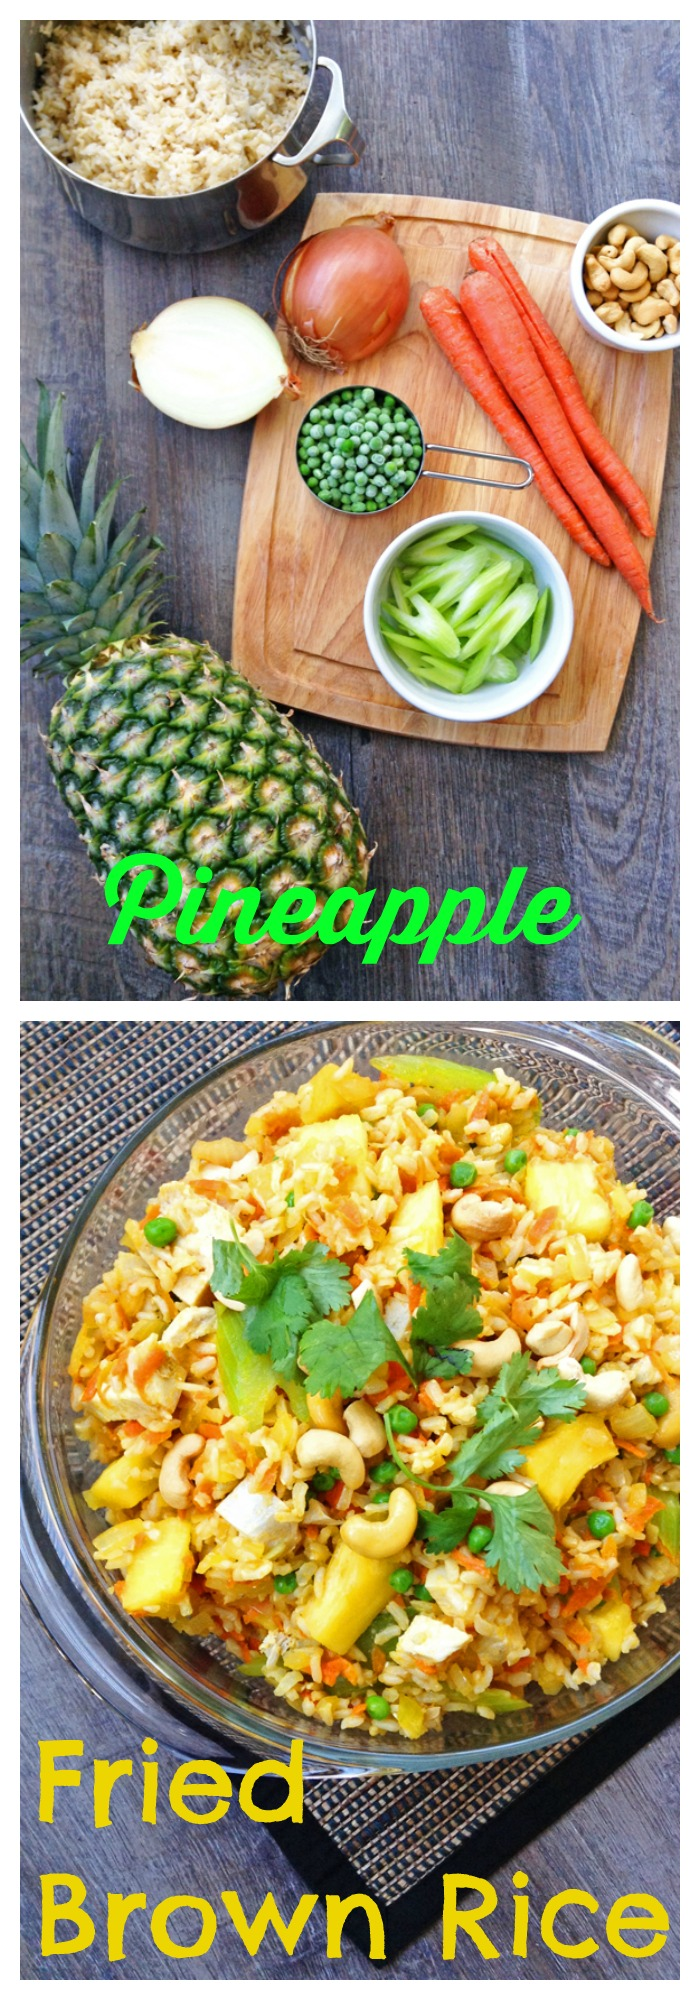 FOOD - Pineapple Fried Brown Rice. Sweet and savory whole grain Pineapple Fried Brown Rice packs fruits AND veggies into one main dish. http://www.superhealthykids.com/pineapple-fried-brown-rice/